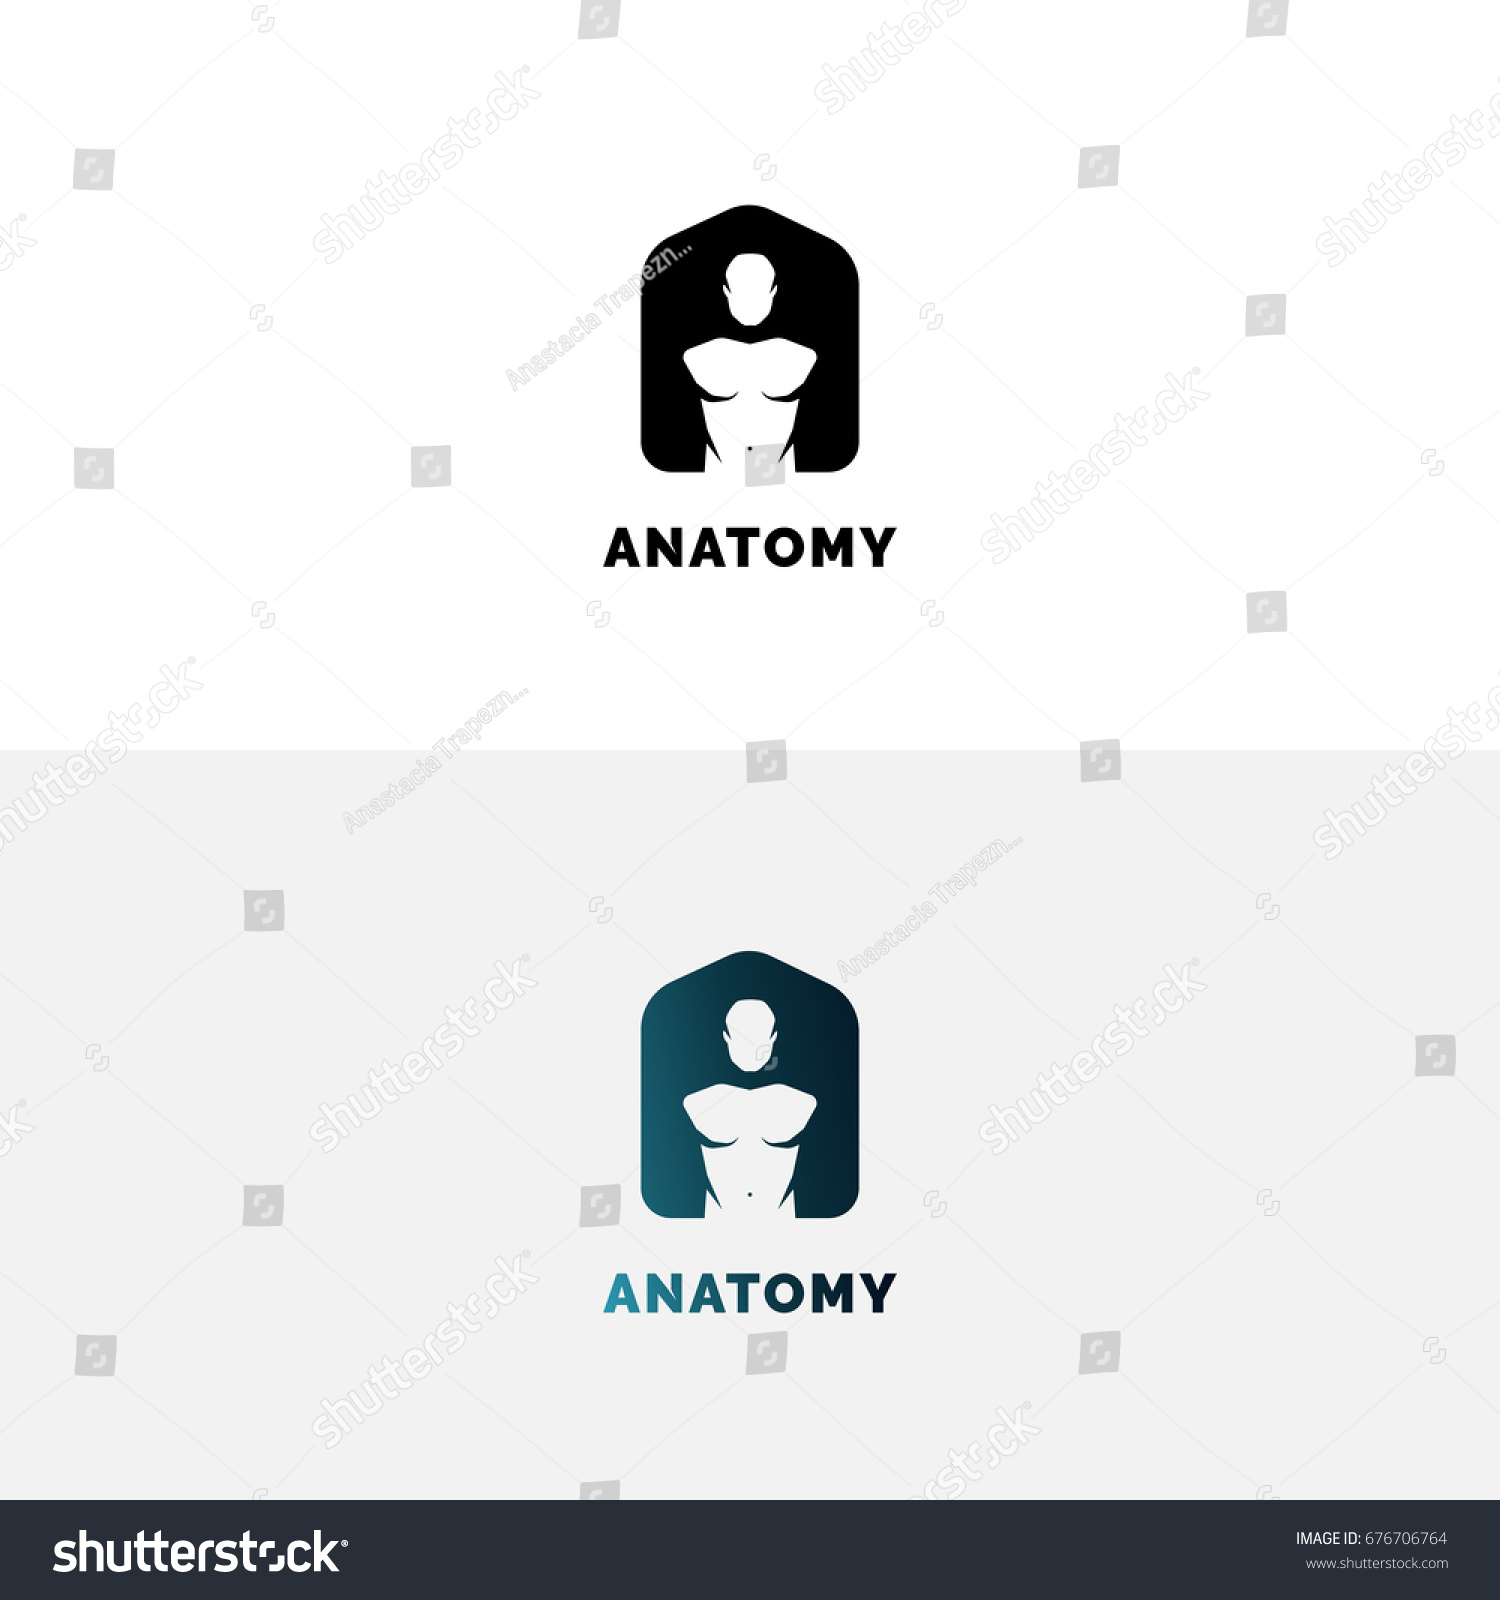 Anatomy Logo Human Torso Negative Space Stock Vector 676706764 ...